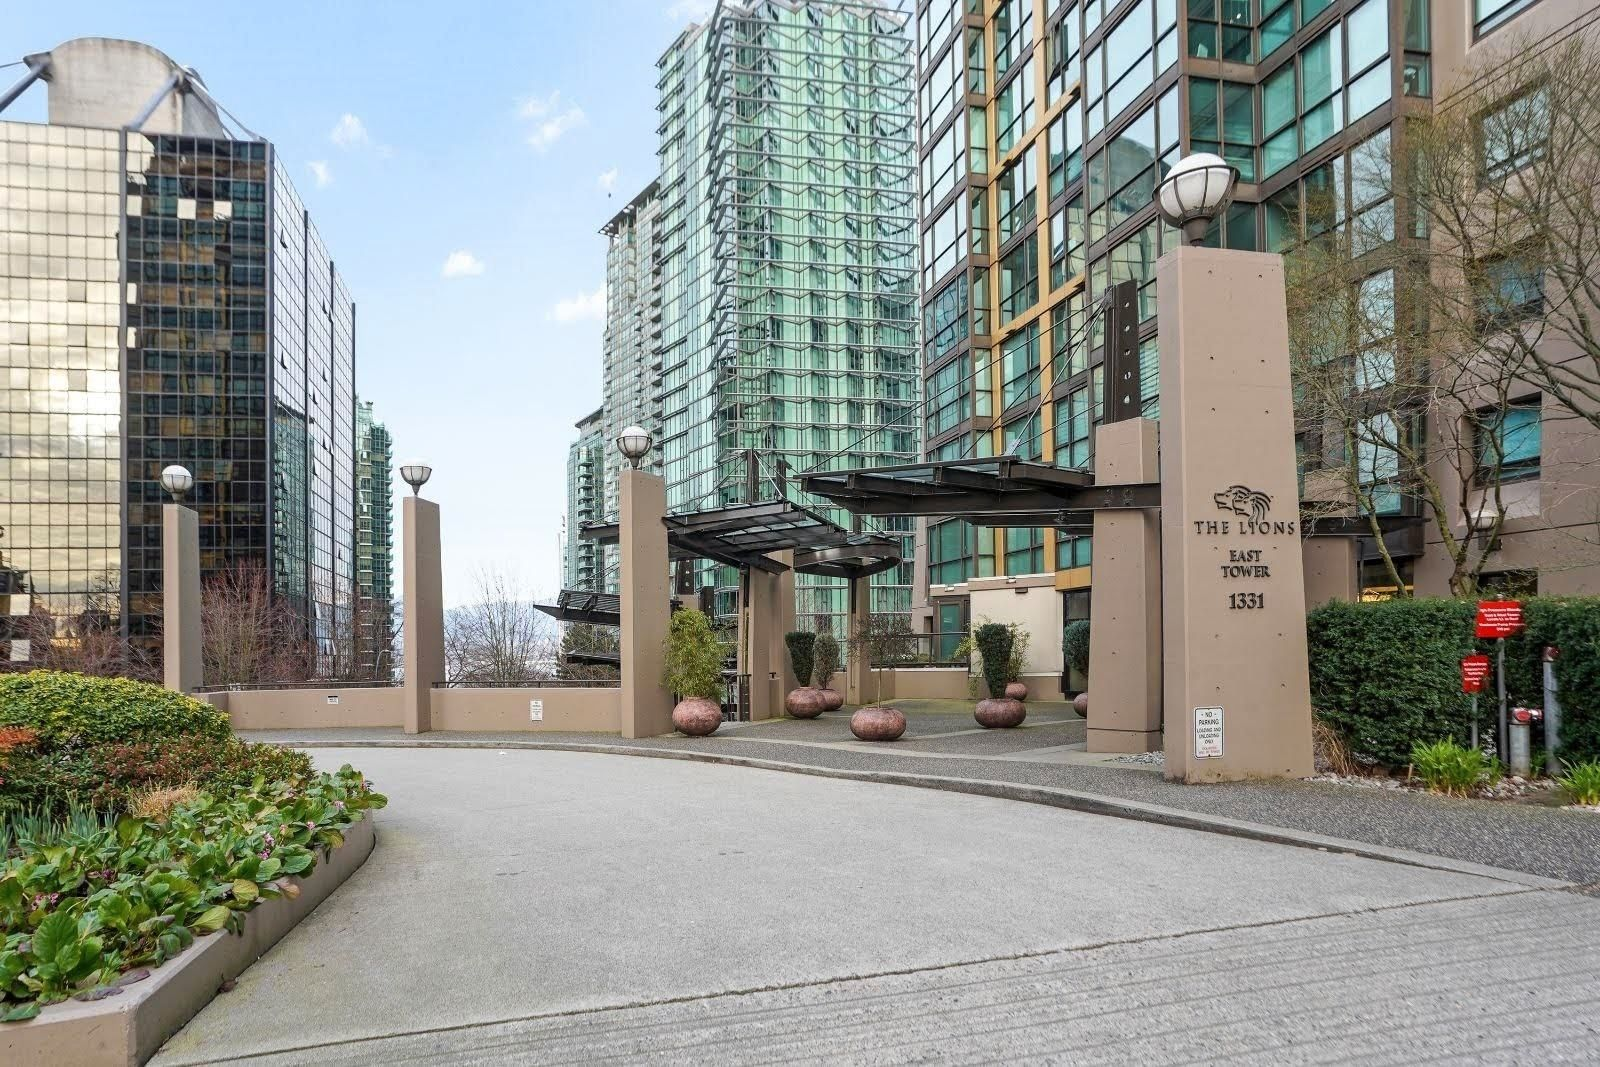 """Main Photo: 2703 1331 ALBERNI Street in Vancouver: West End VW Condo for sale in """"The Lions"""" (Vancouver West)  : MLS®# R2618137"""